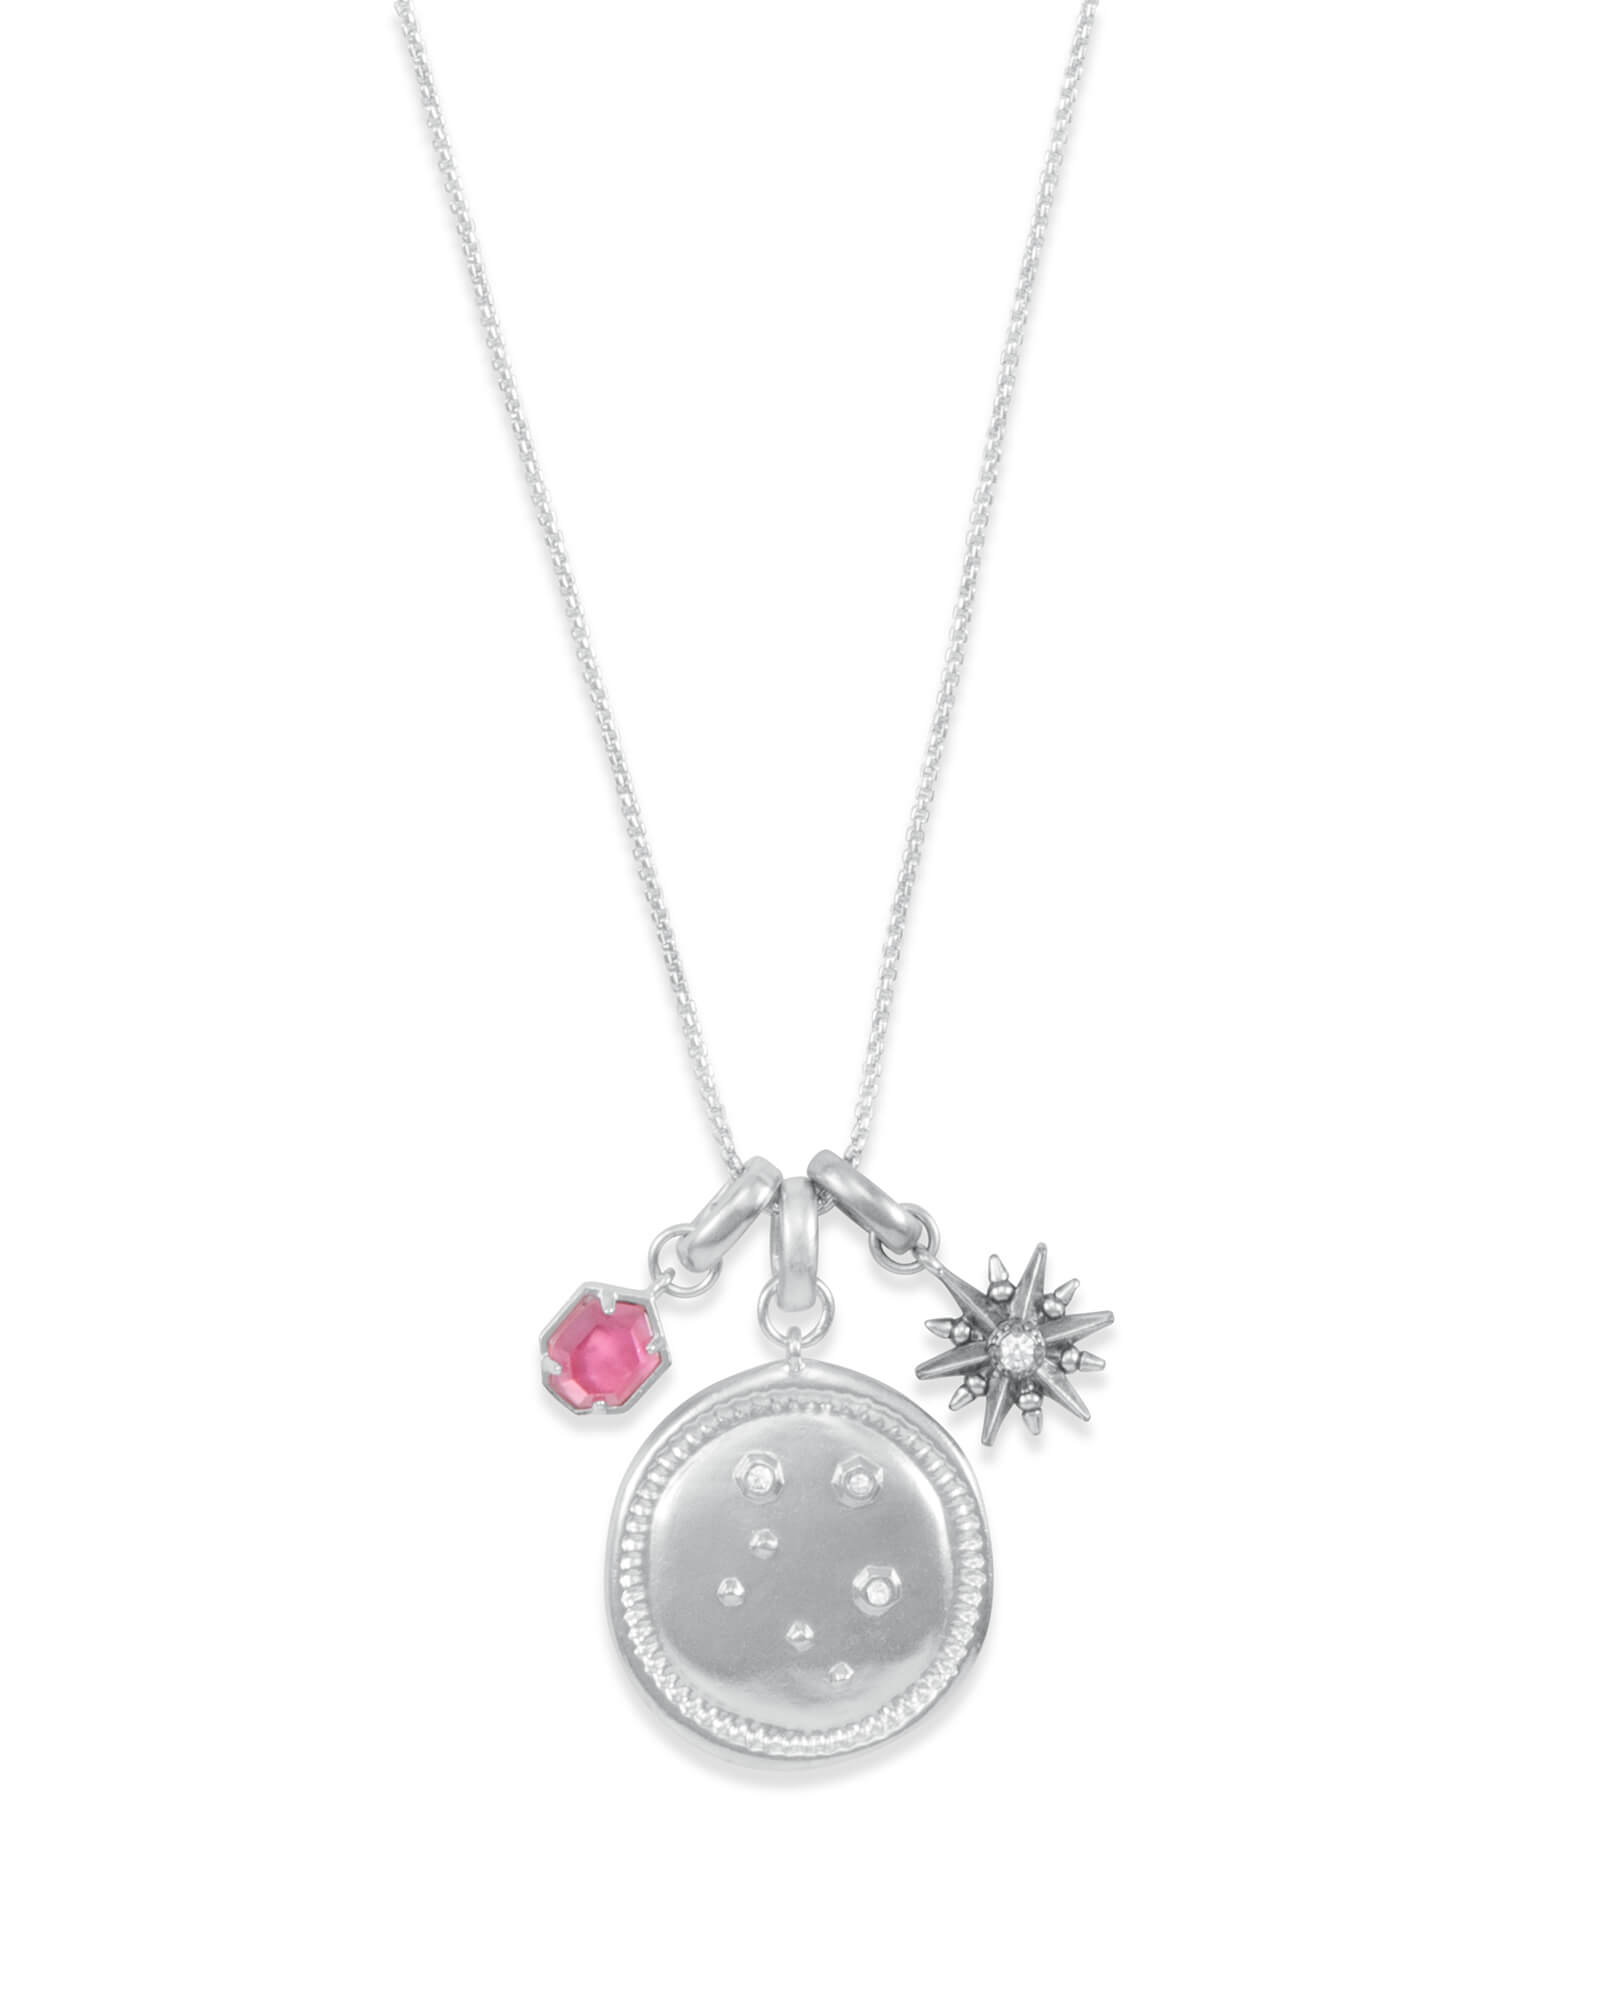 October Libra Charm Necklace Set in Silver